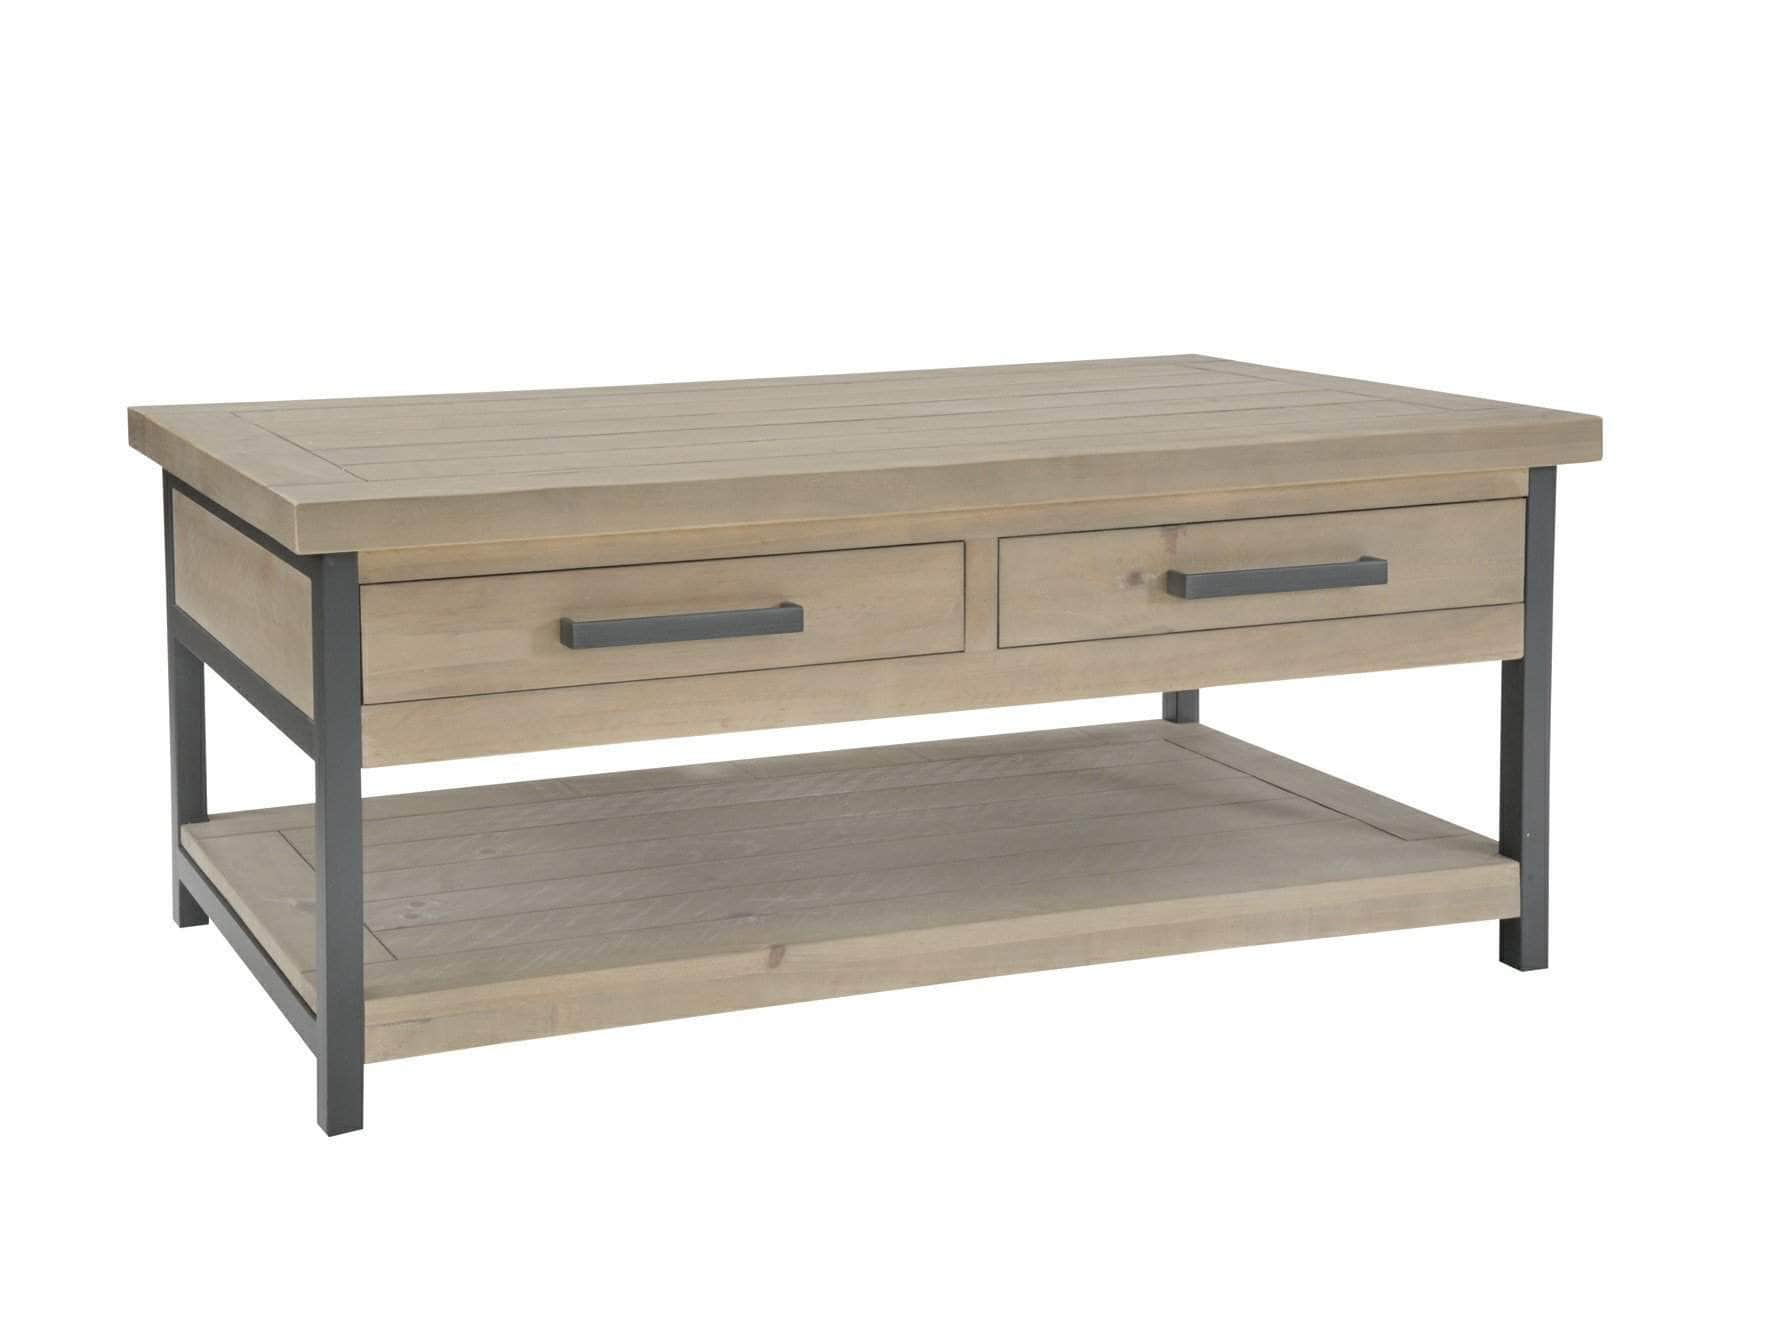 Loxton Industrial Style Coffee Table